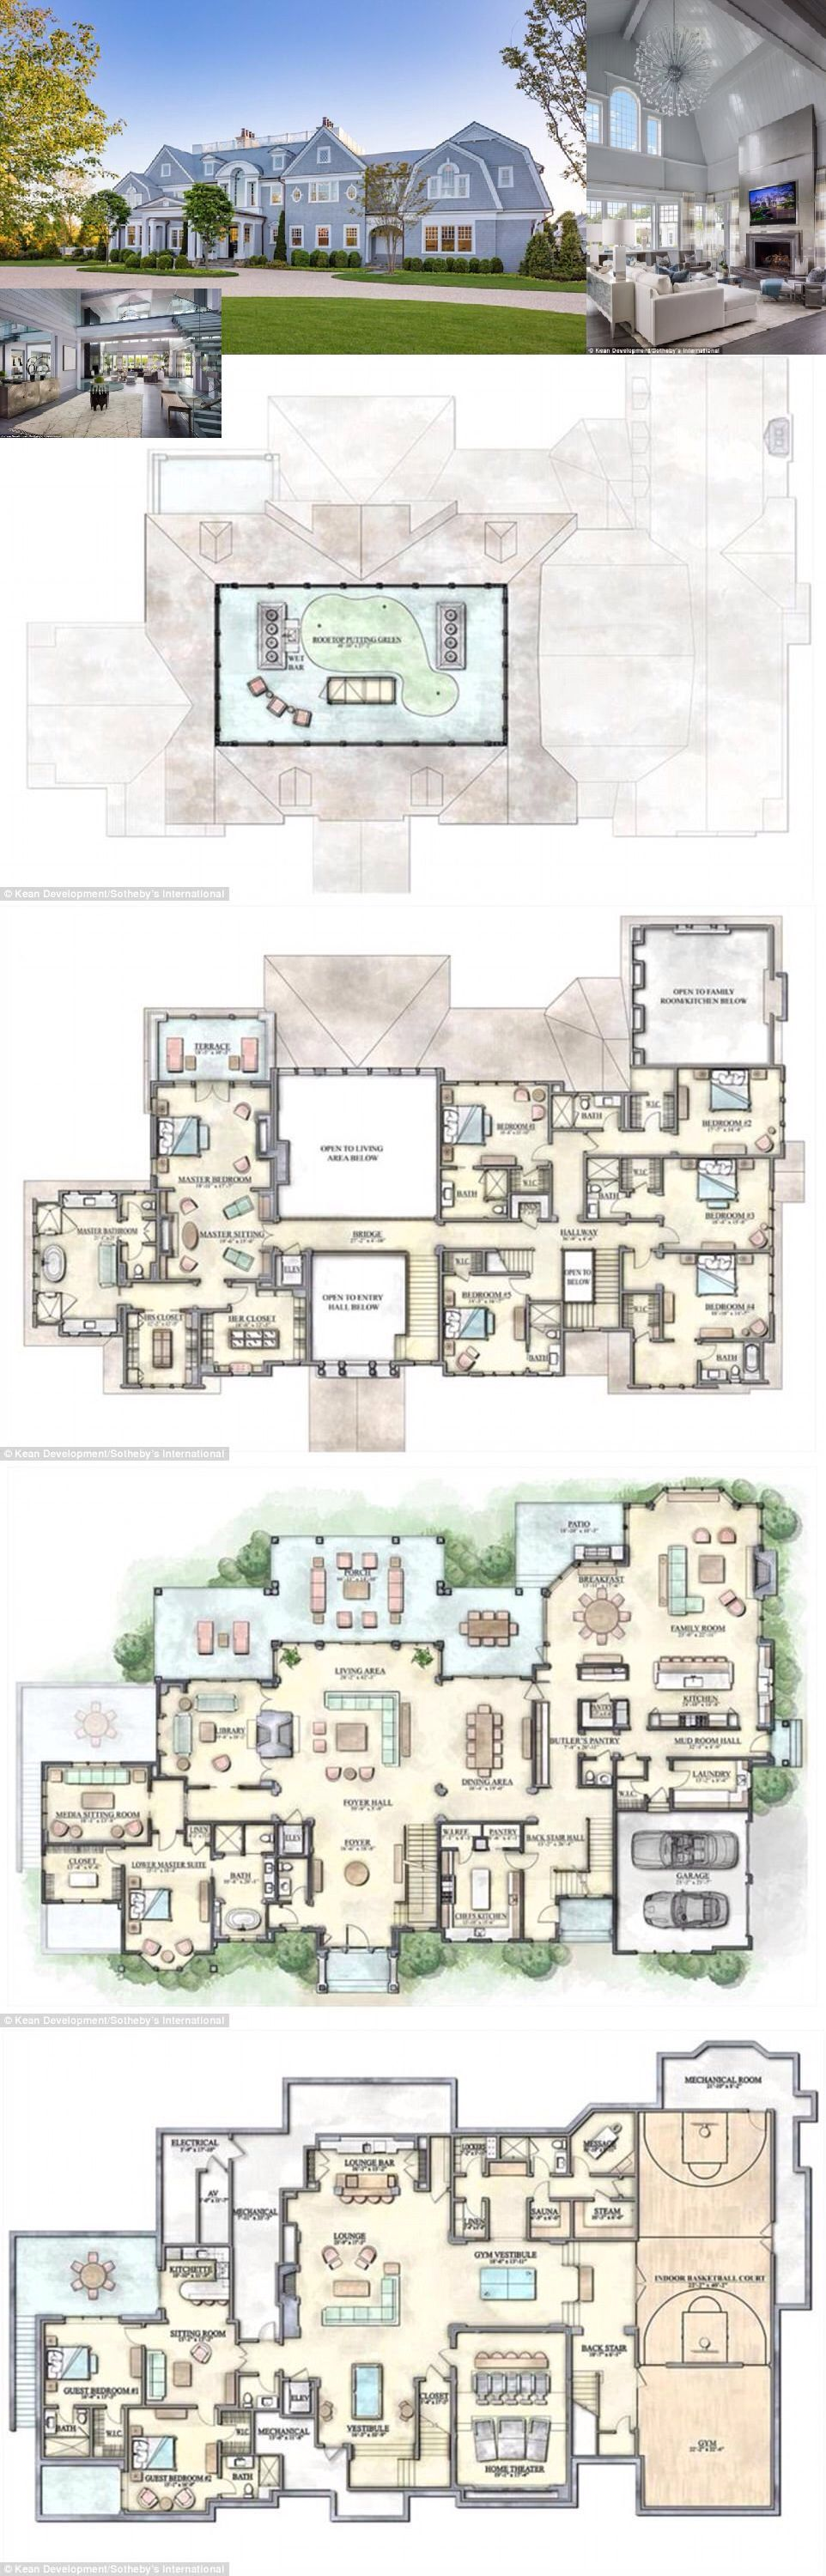 Largest Mansion For Sale In The Hamptons Hits The Market For 35m House Plans Mansion Mansion Floor Plan Hampton Mansion